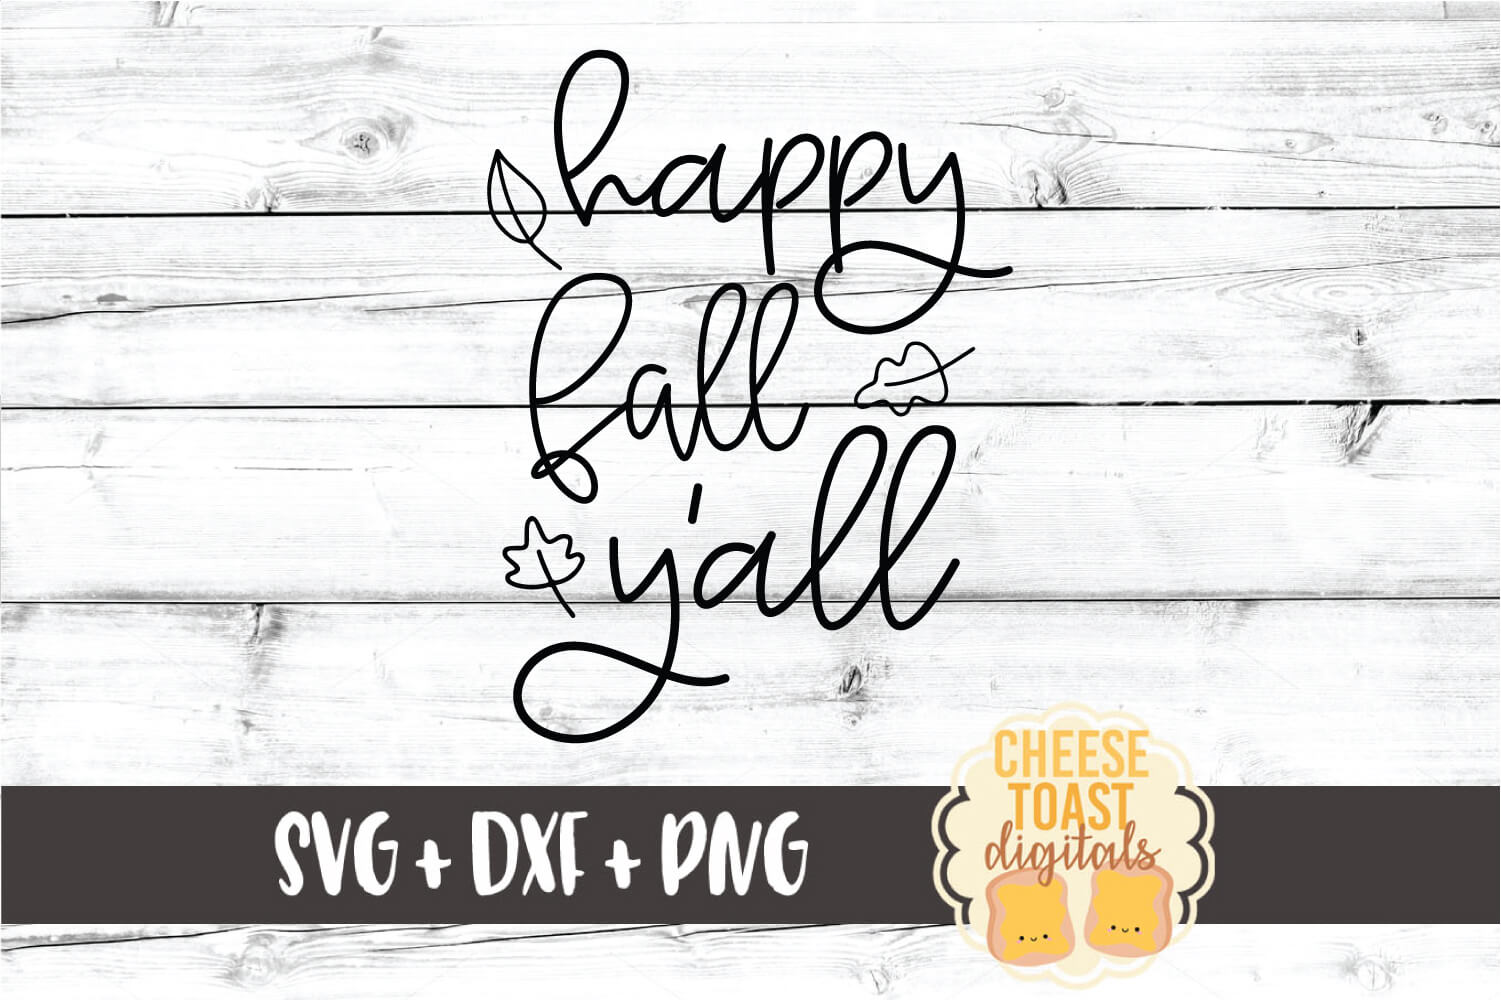 Happy Fall Y'all - Fall Sign SVG PNG DXF Cut Files example image 2